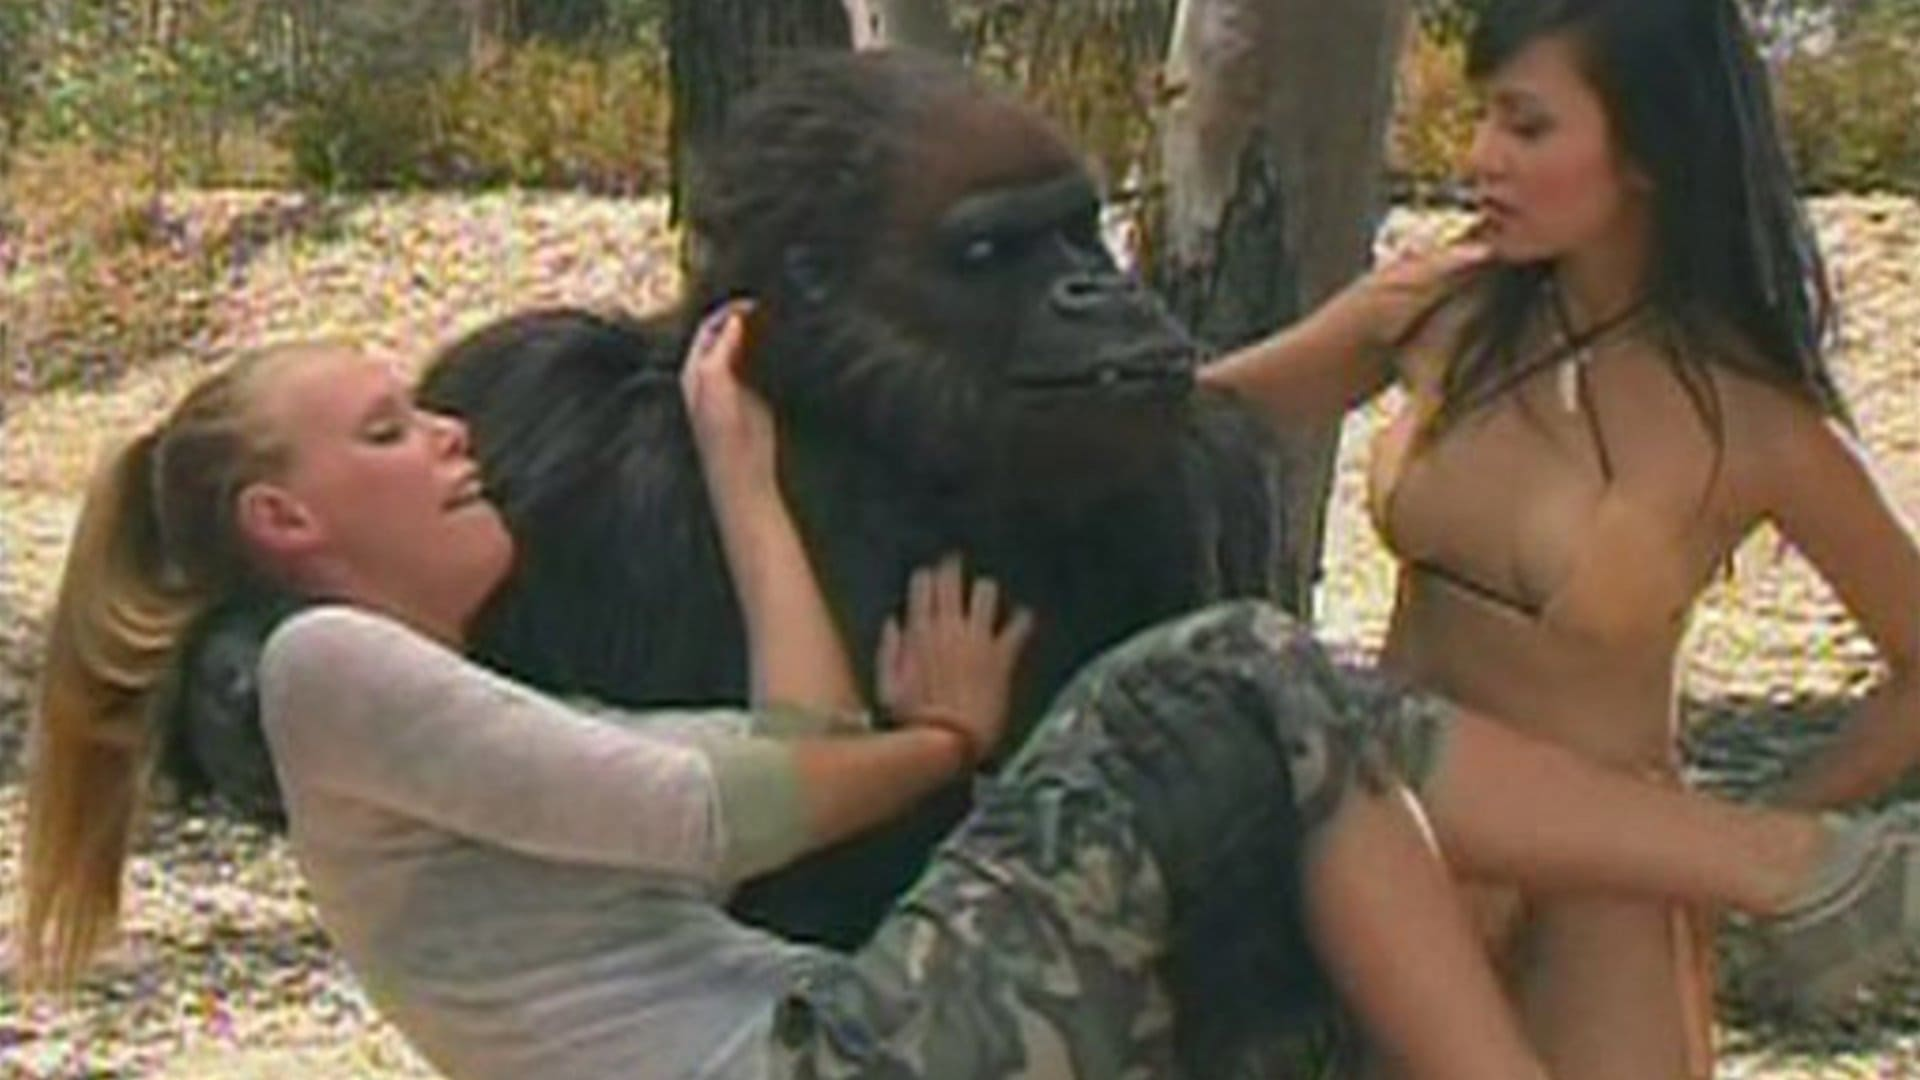 gorilla-pictures-of-naked-women-porn-hot-saxy-xxx-indian-village-girls